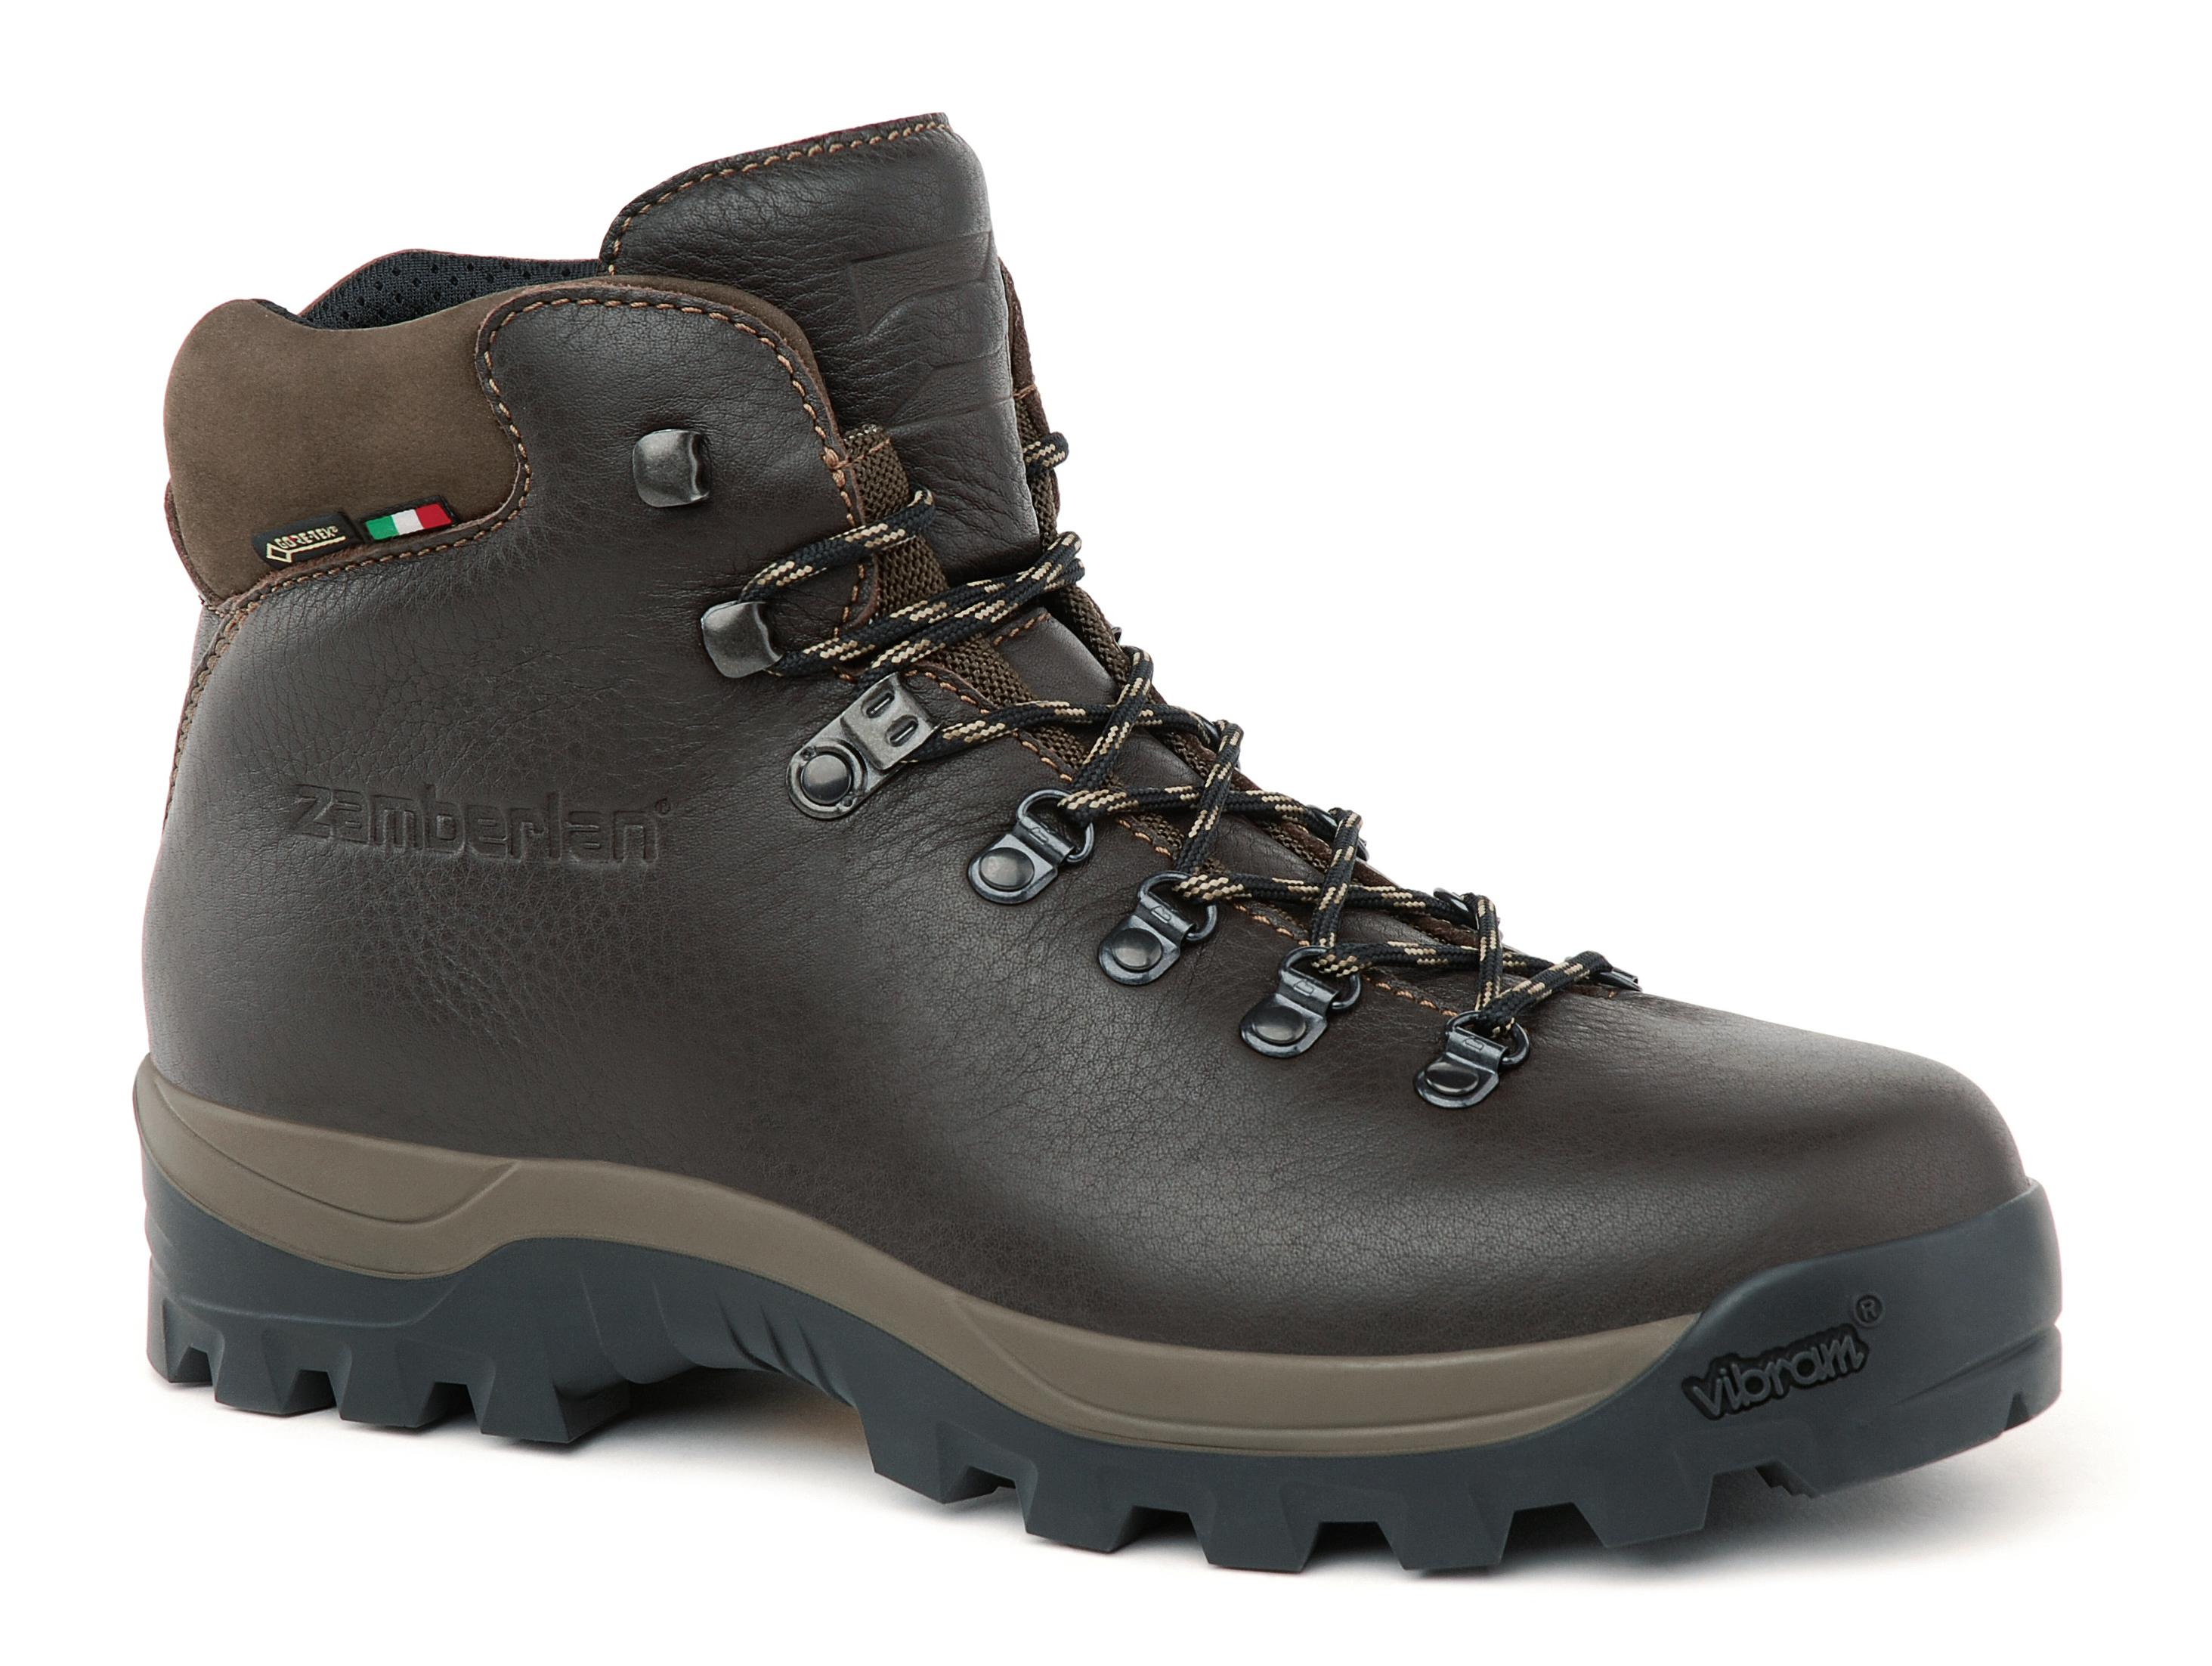 5030 SEQUOIA GTX   -   Bottes  Hiking-   Brown